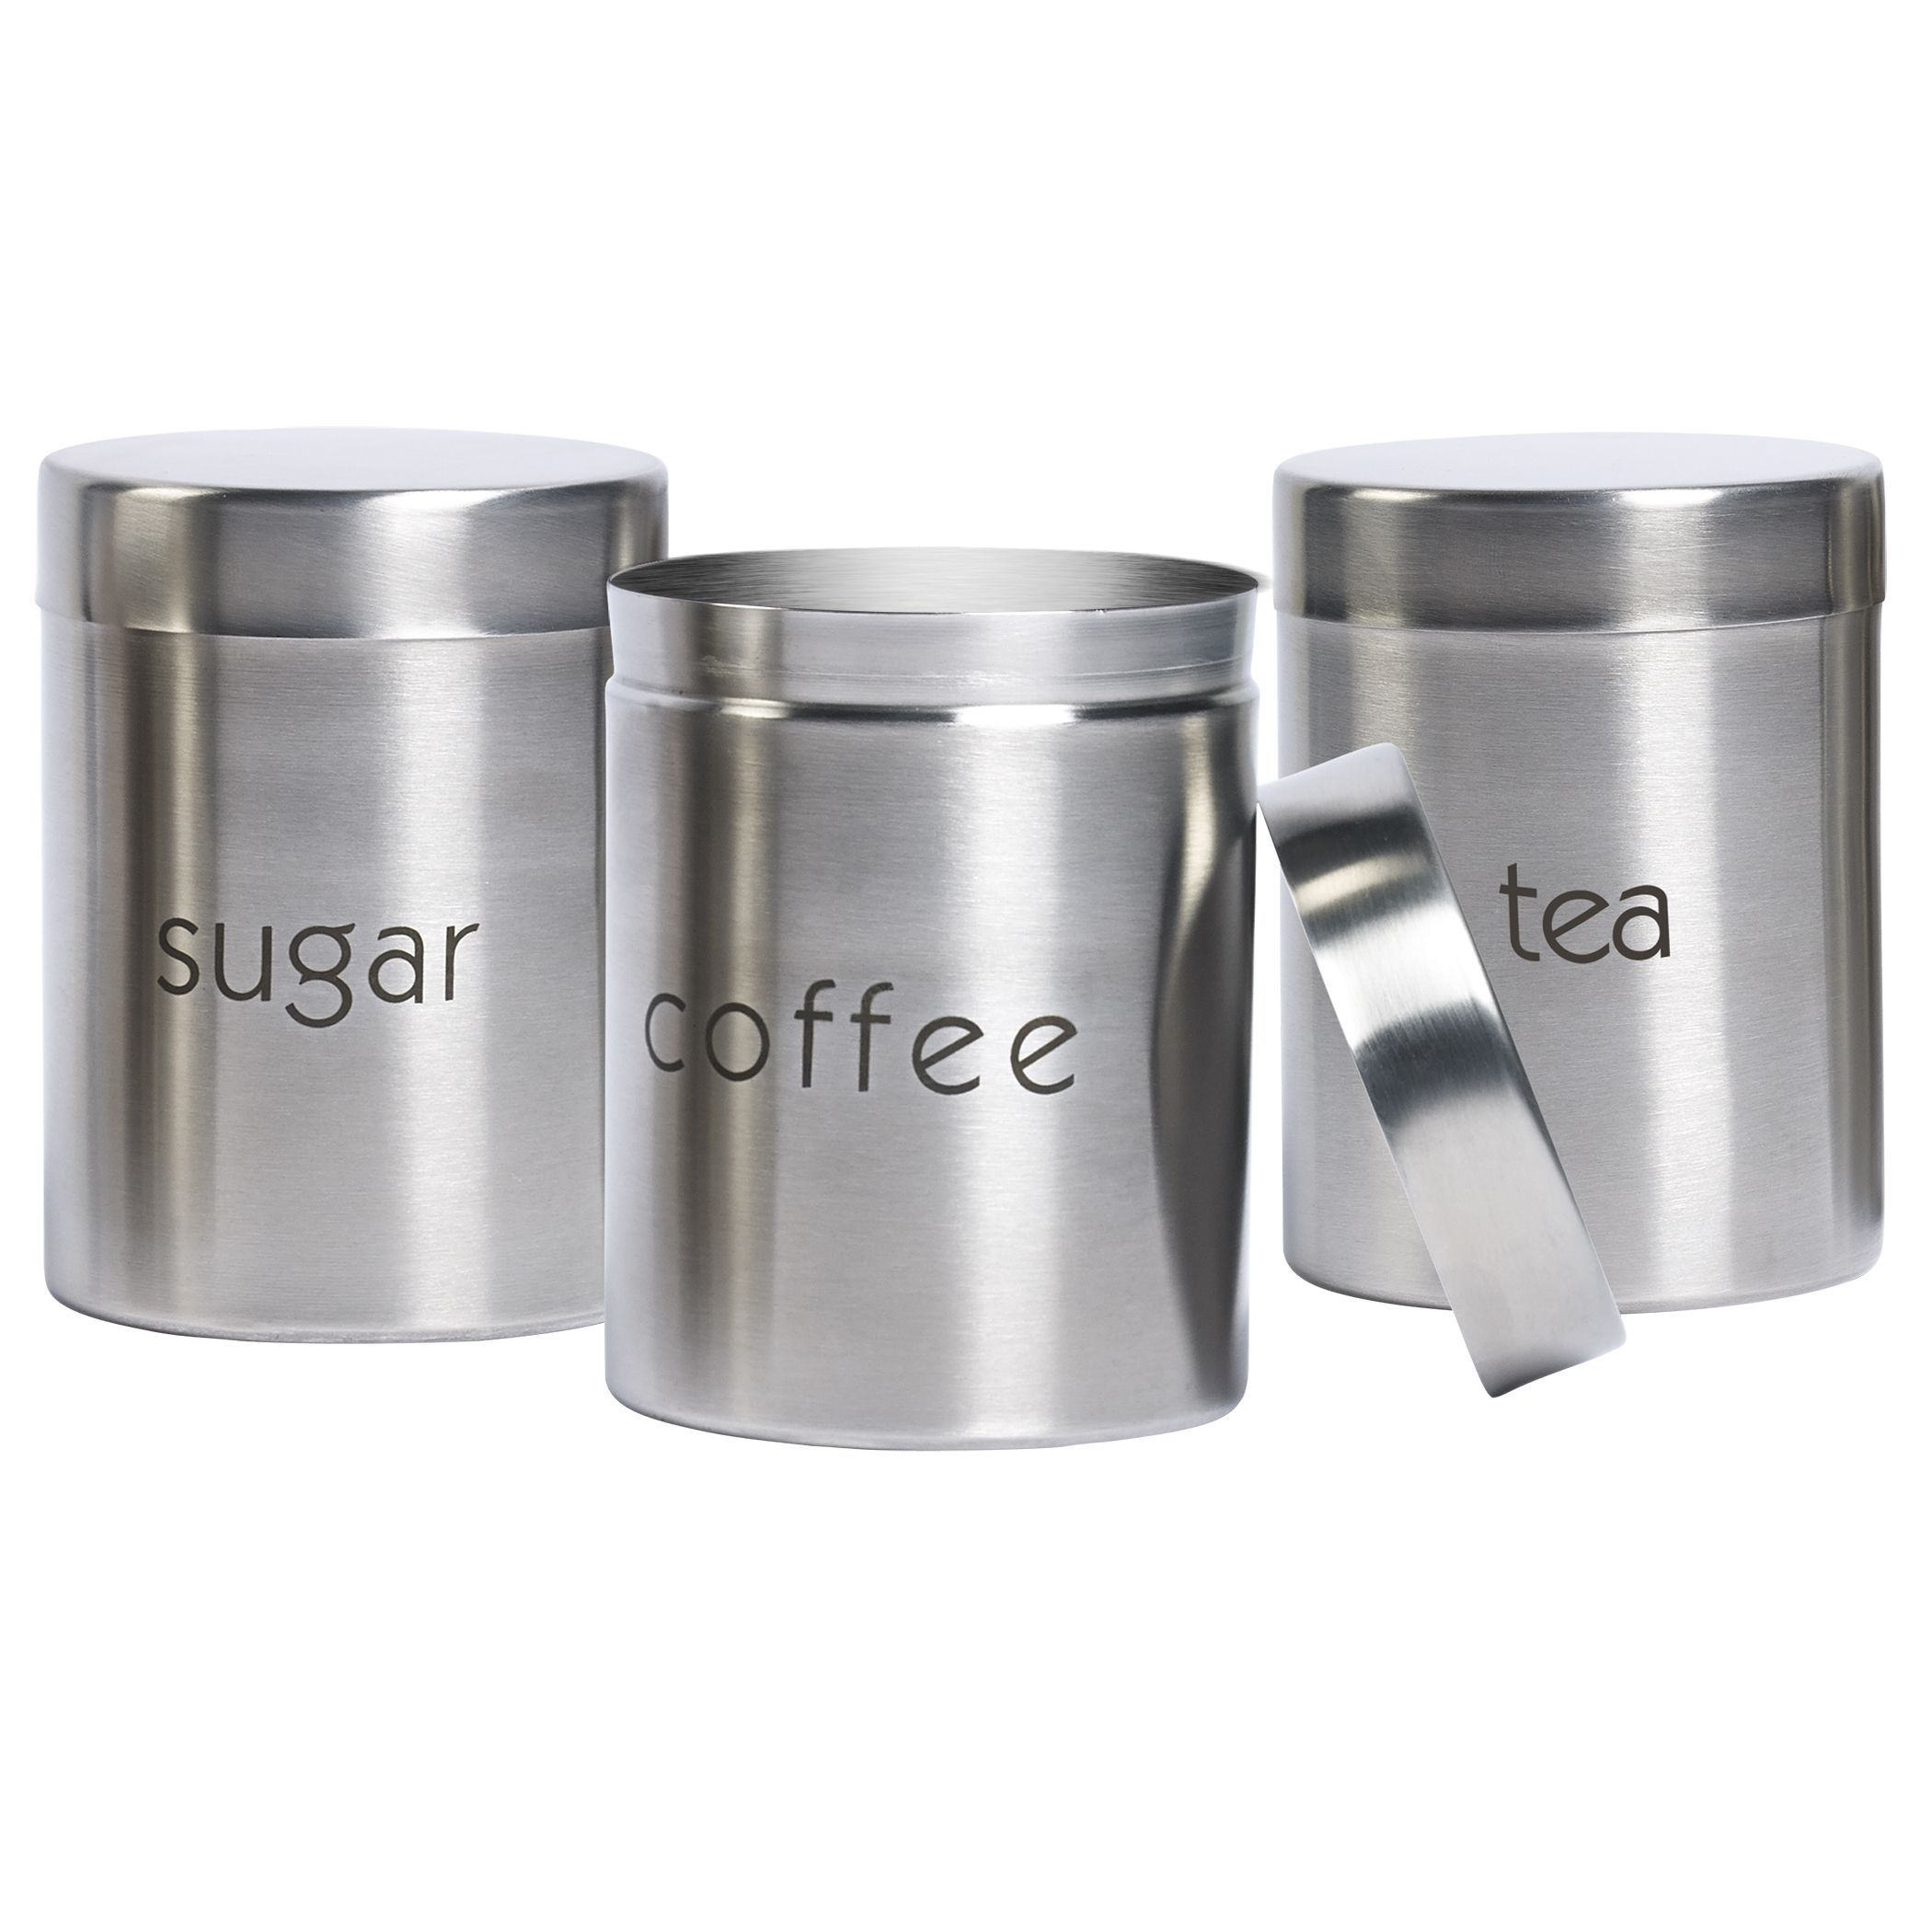 stainless steel 3 piece canister set stainless steel 3 piece rh pinterest com